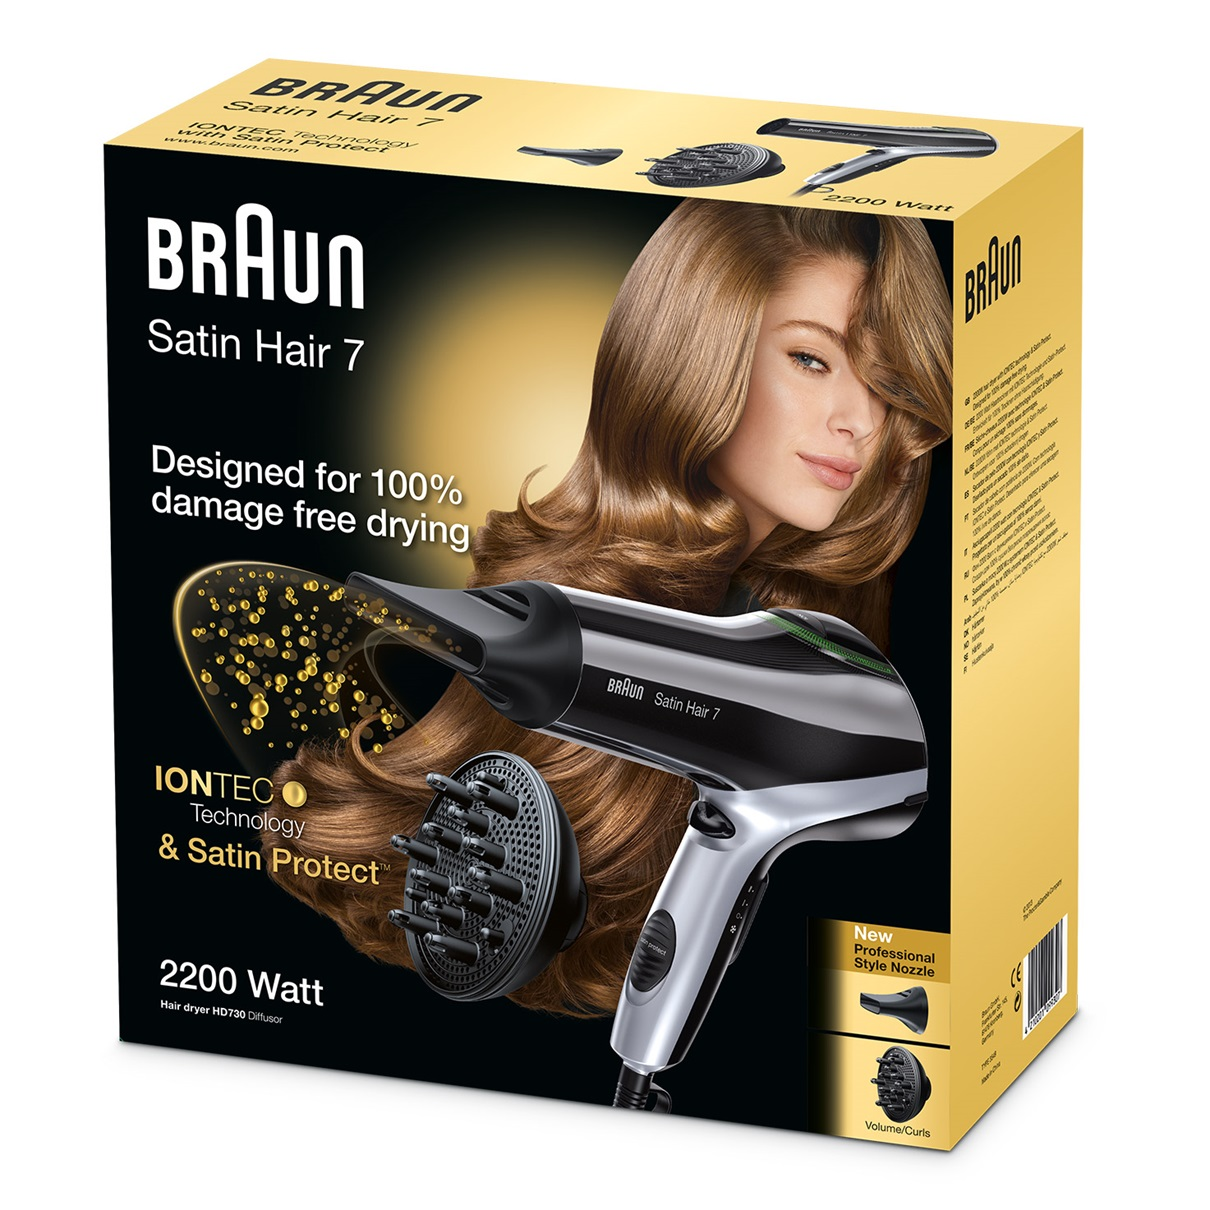 Braun Satin Hair 7 HD730 with IONTEC, Satin Protect and diffuser - packaging